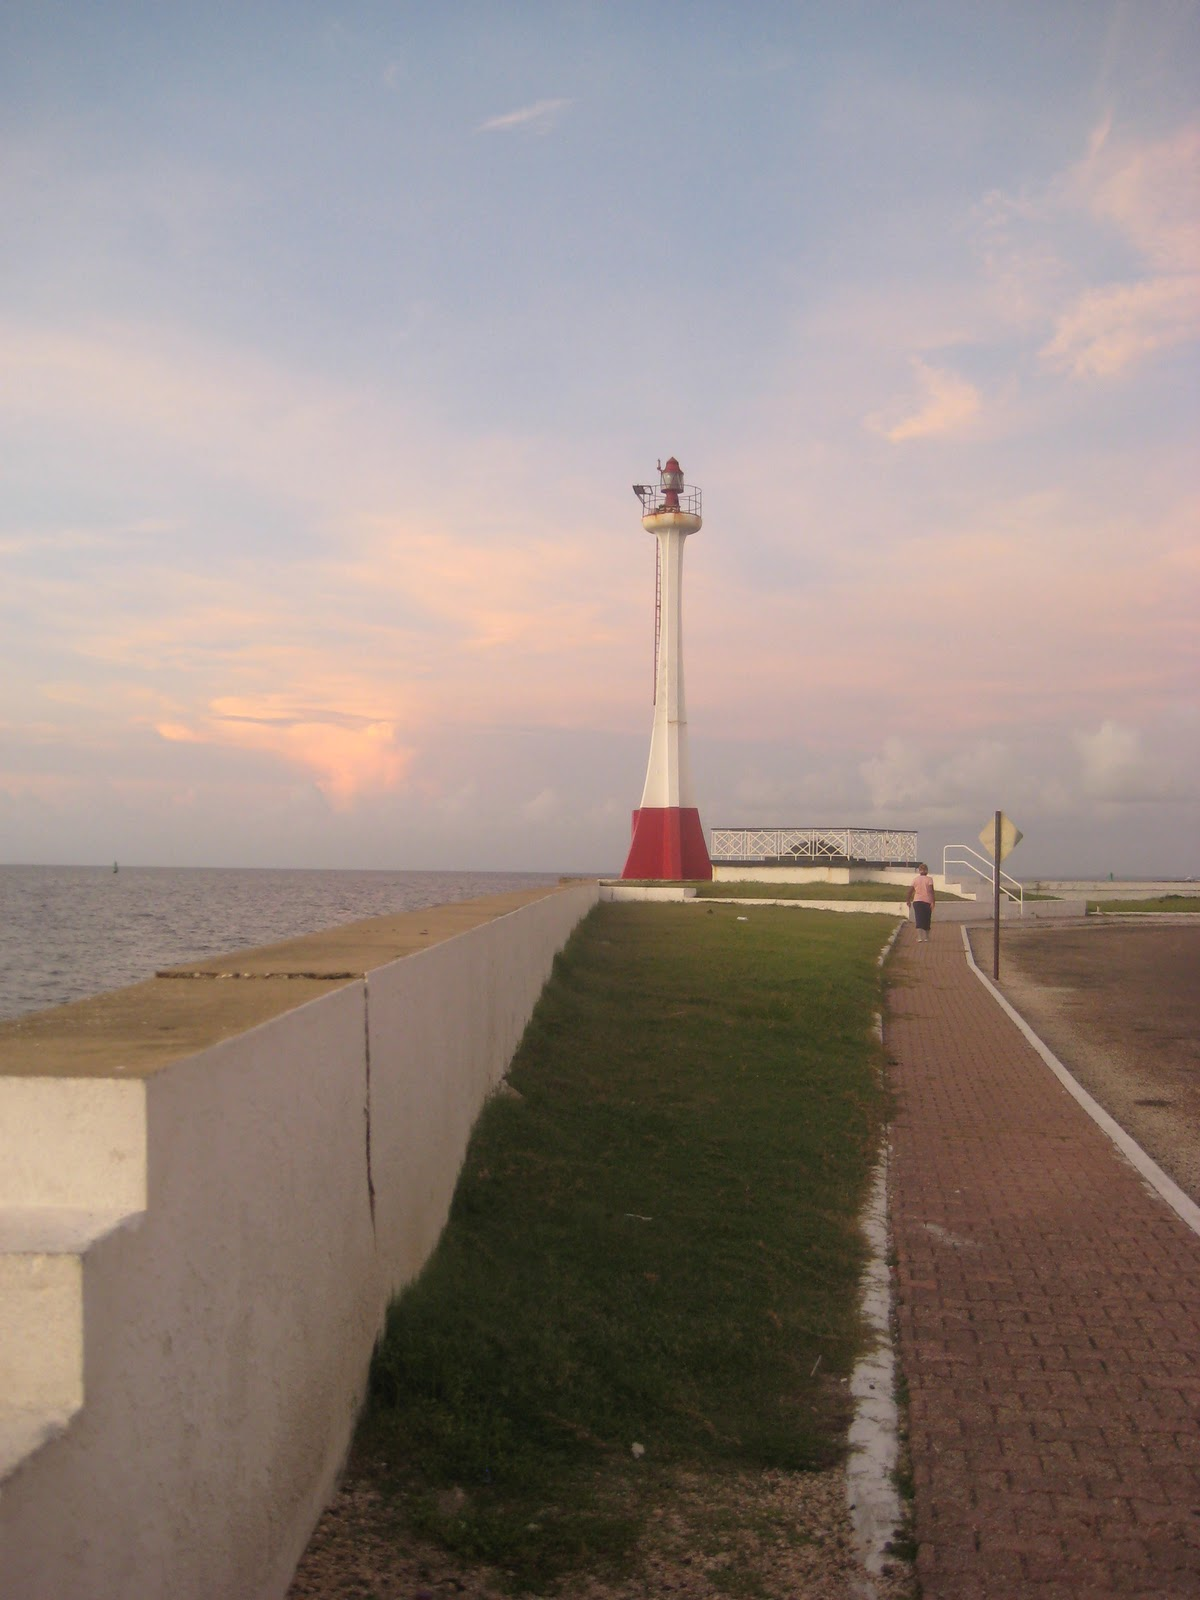 Baron Bliss Tomb Belize City, Belize City, You are Beautiful in The Morning! - San Pedro Scoop